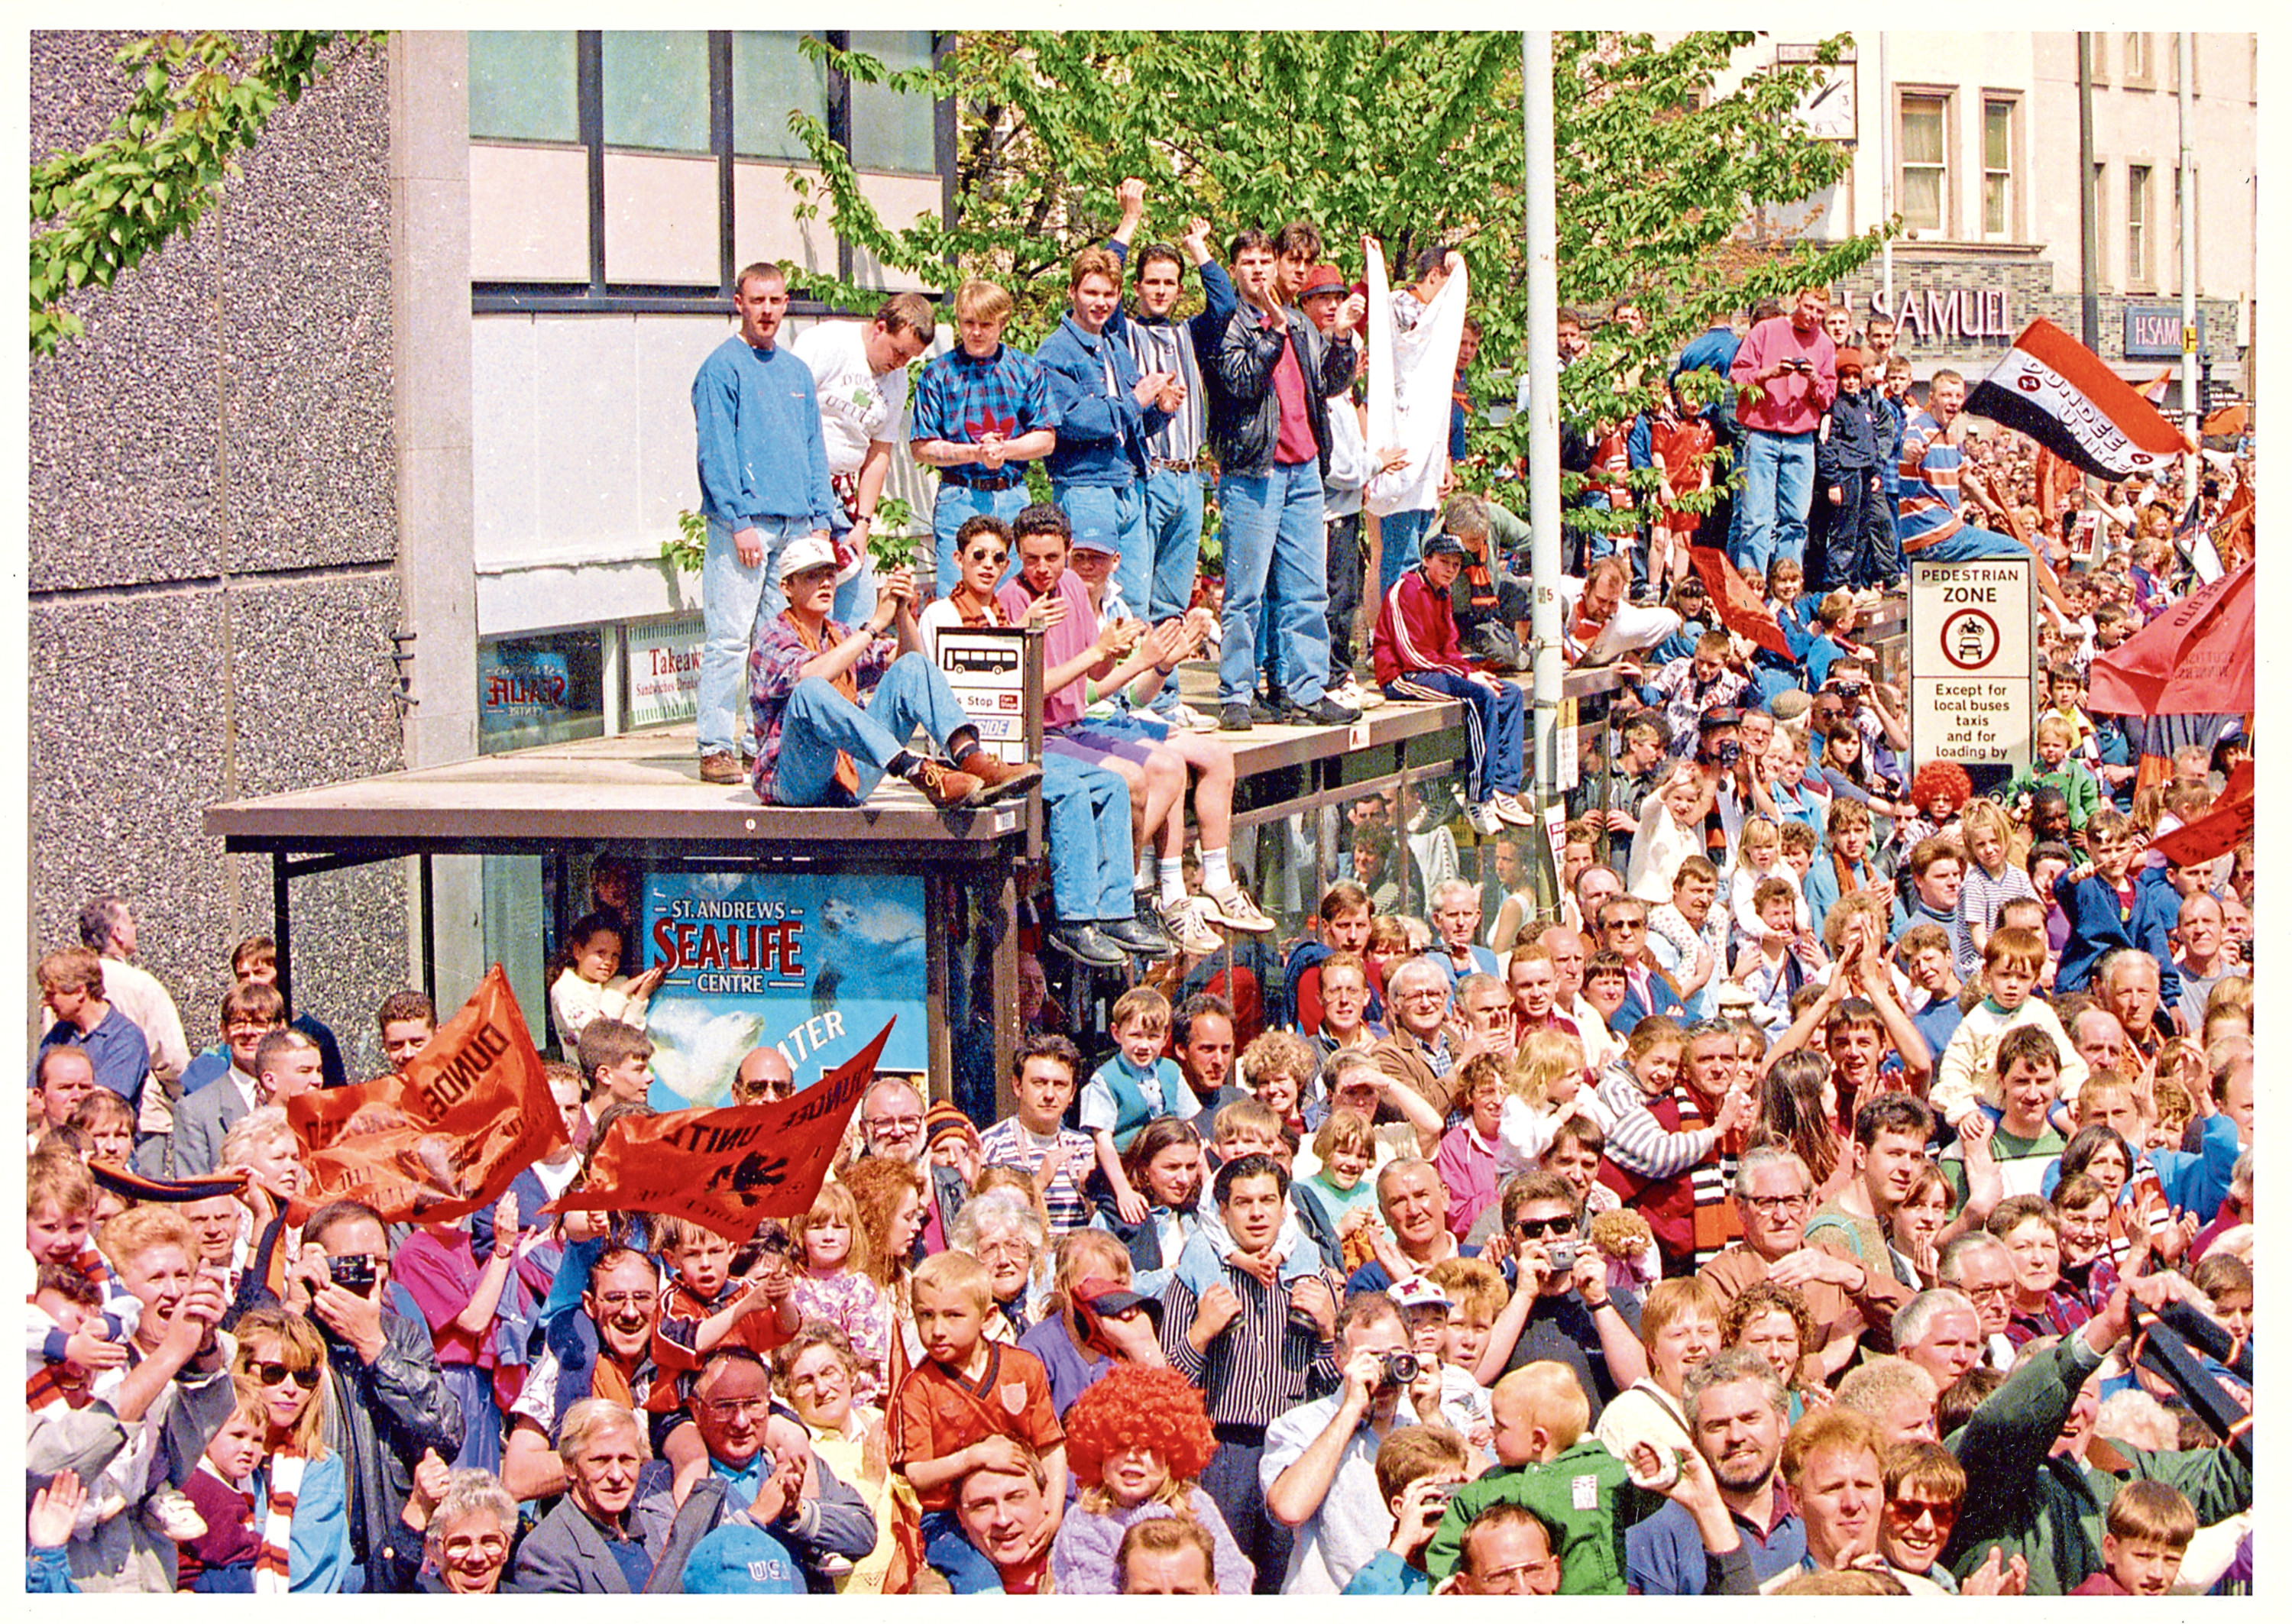 Dundee United supporters waiting for the team to arrive in the City Square, Dundee after the Scottish Cup victory over Rangers in 1994